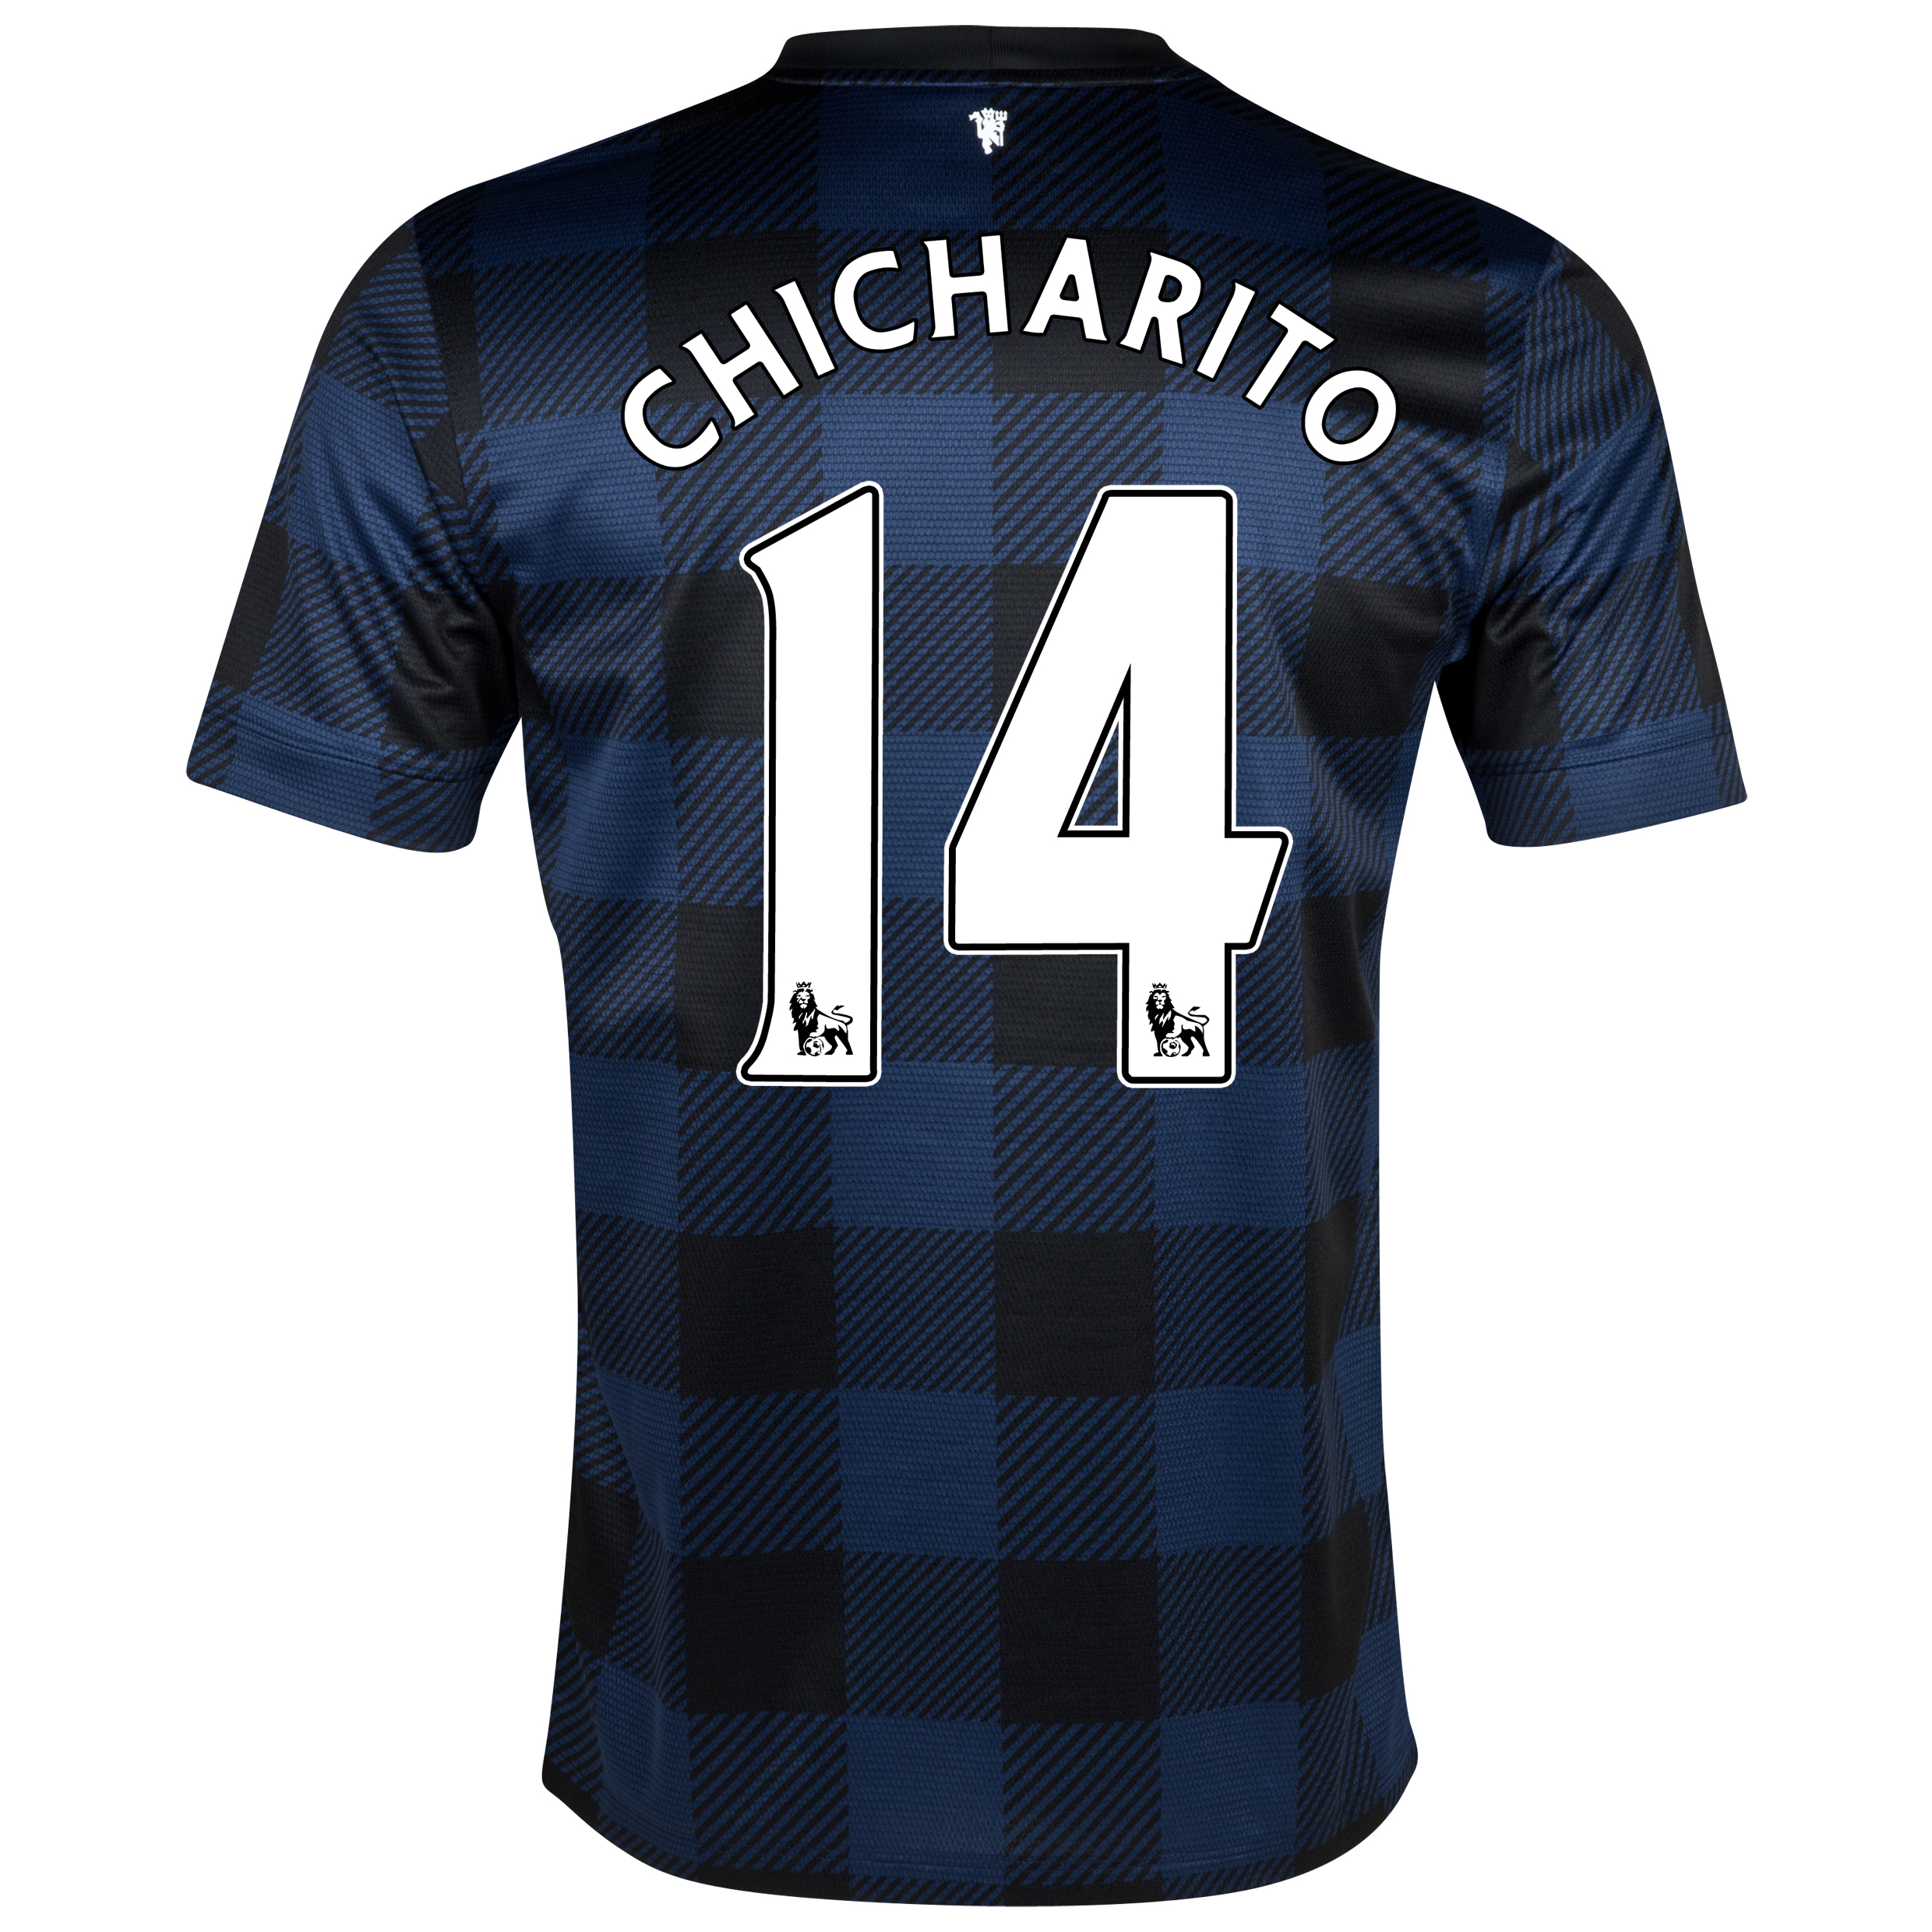 Manchester United Away Shirt 2013/14 with Chicharito 14 printing